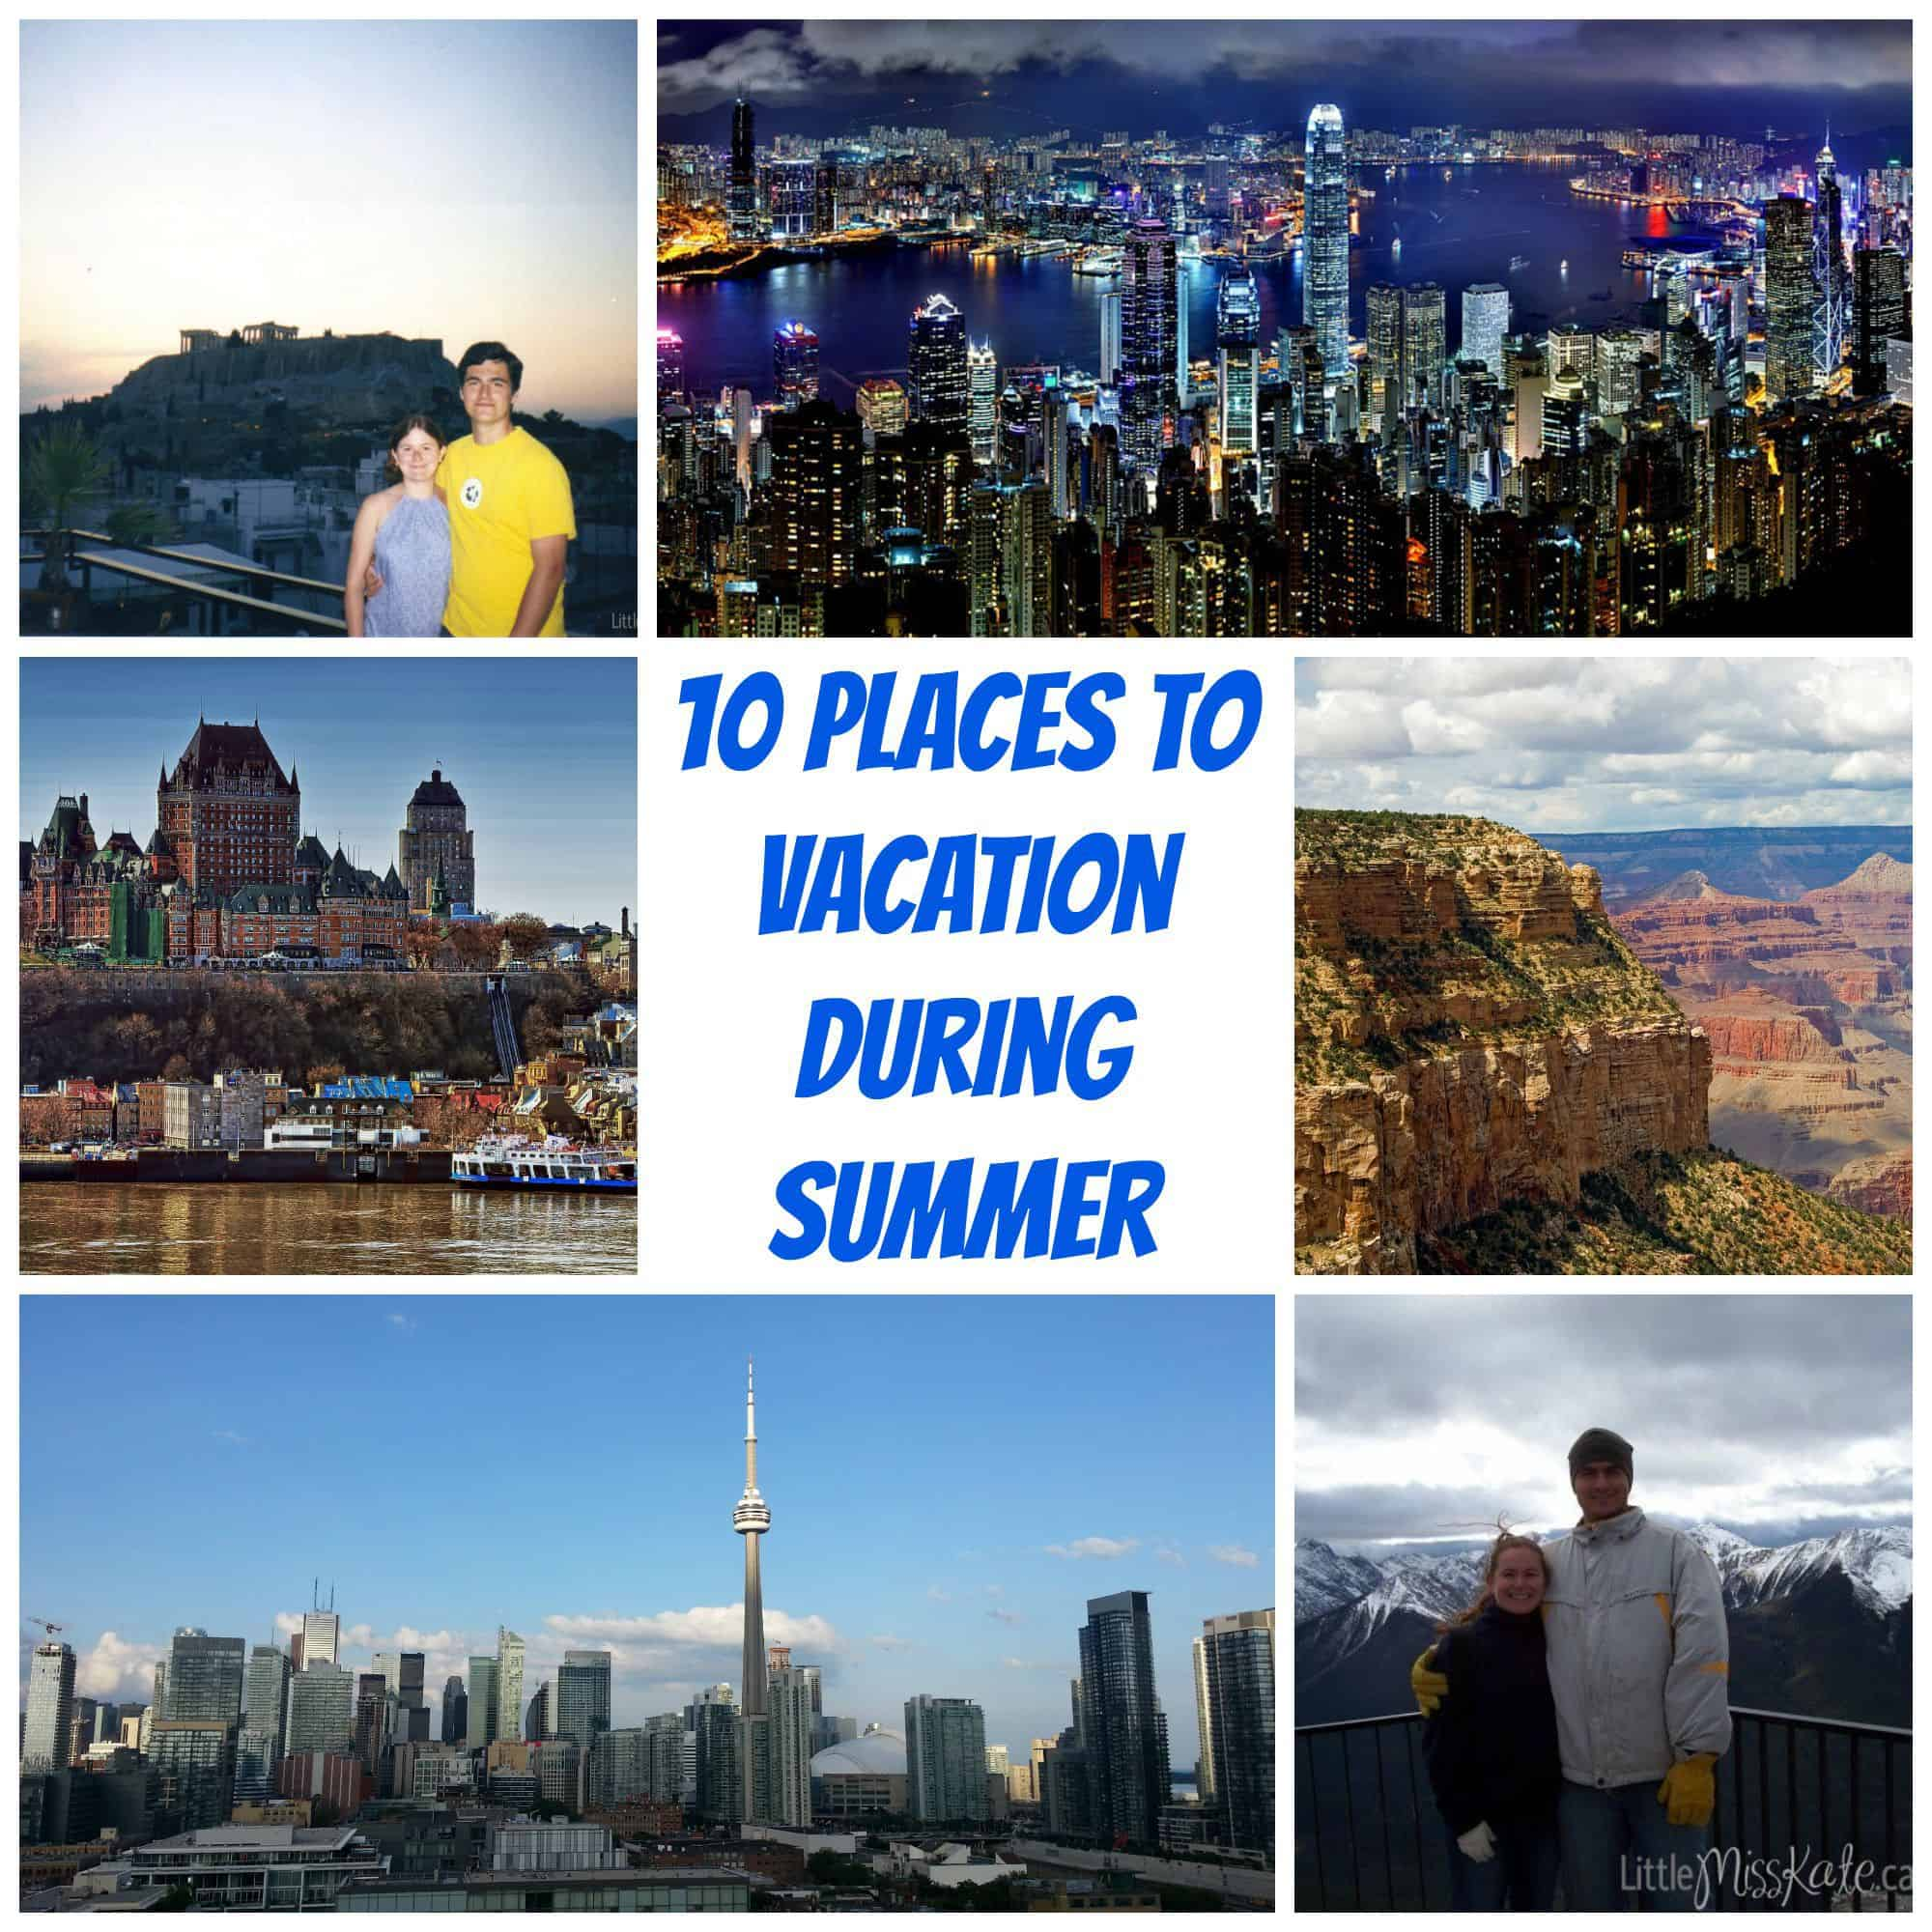 10-places-to-vacation-during-summer